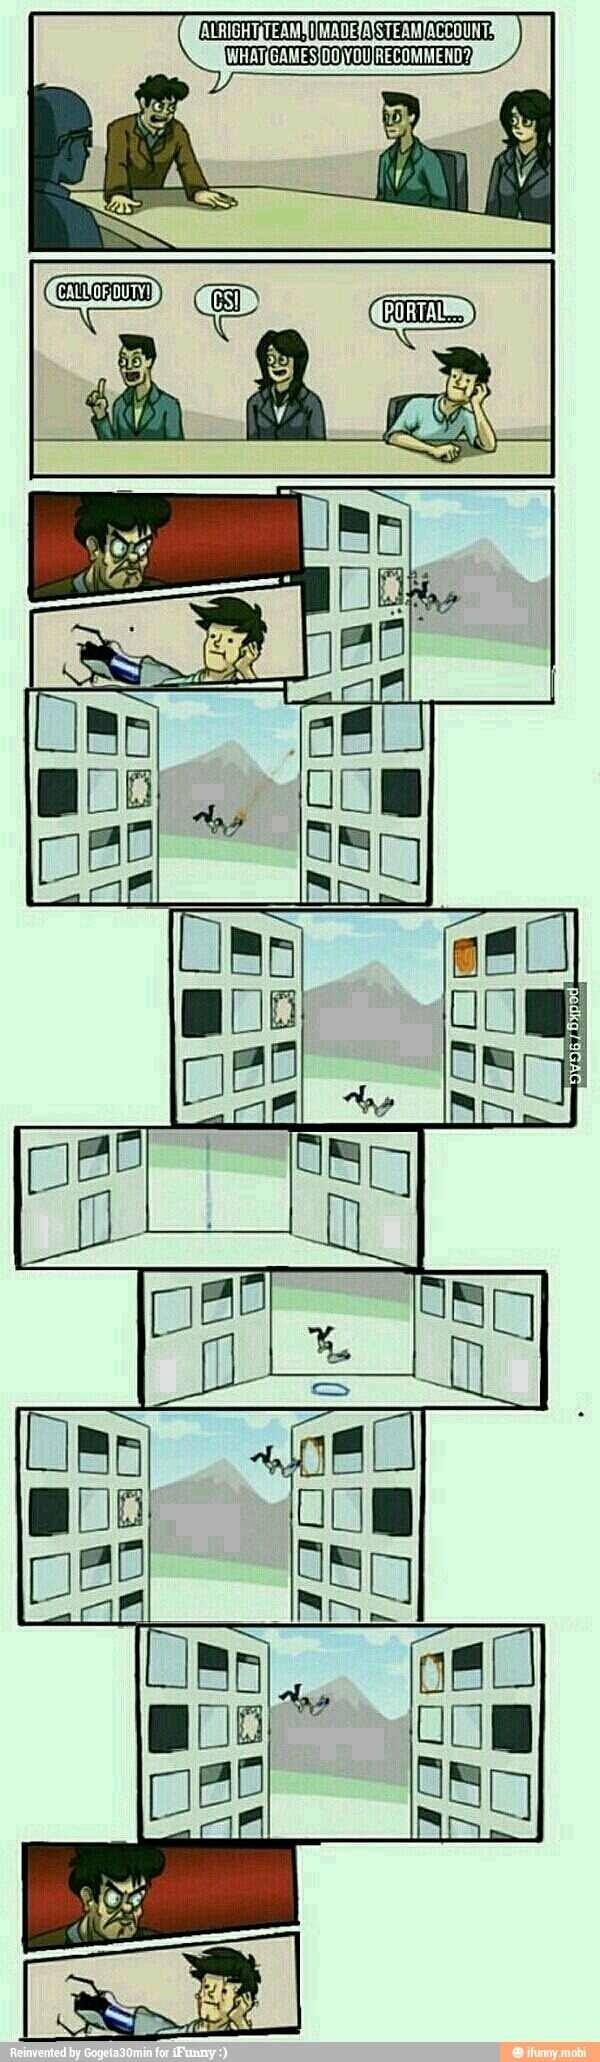 Portal Funny pictures, Lol